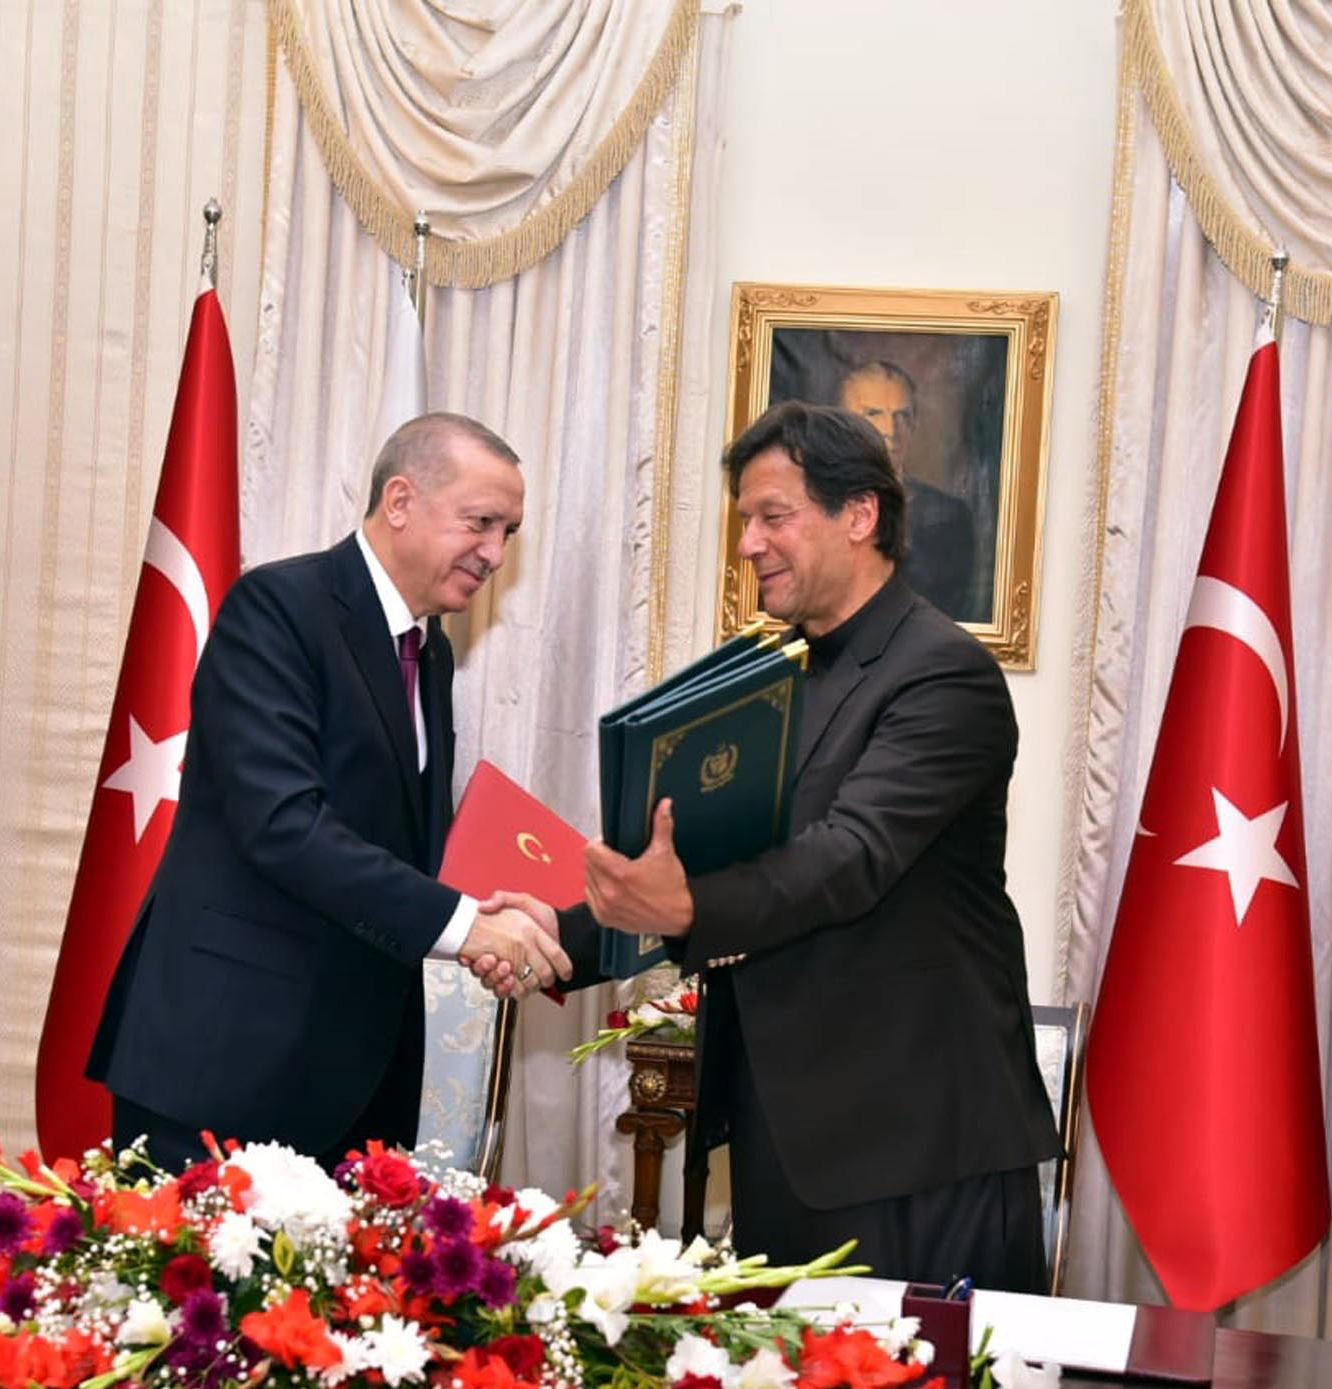 Ankara is attempting to extend its influence to Muslims in South Asia